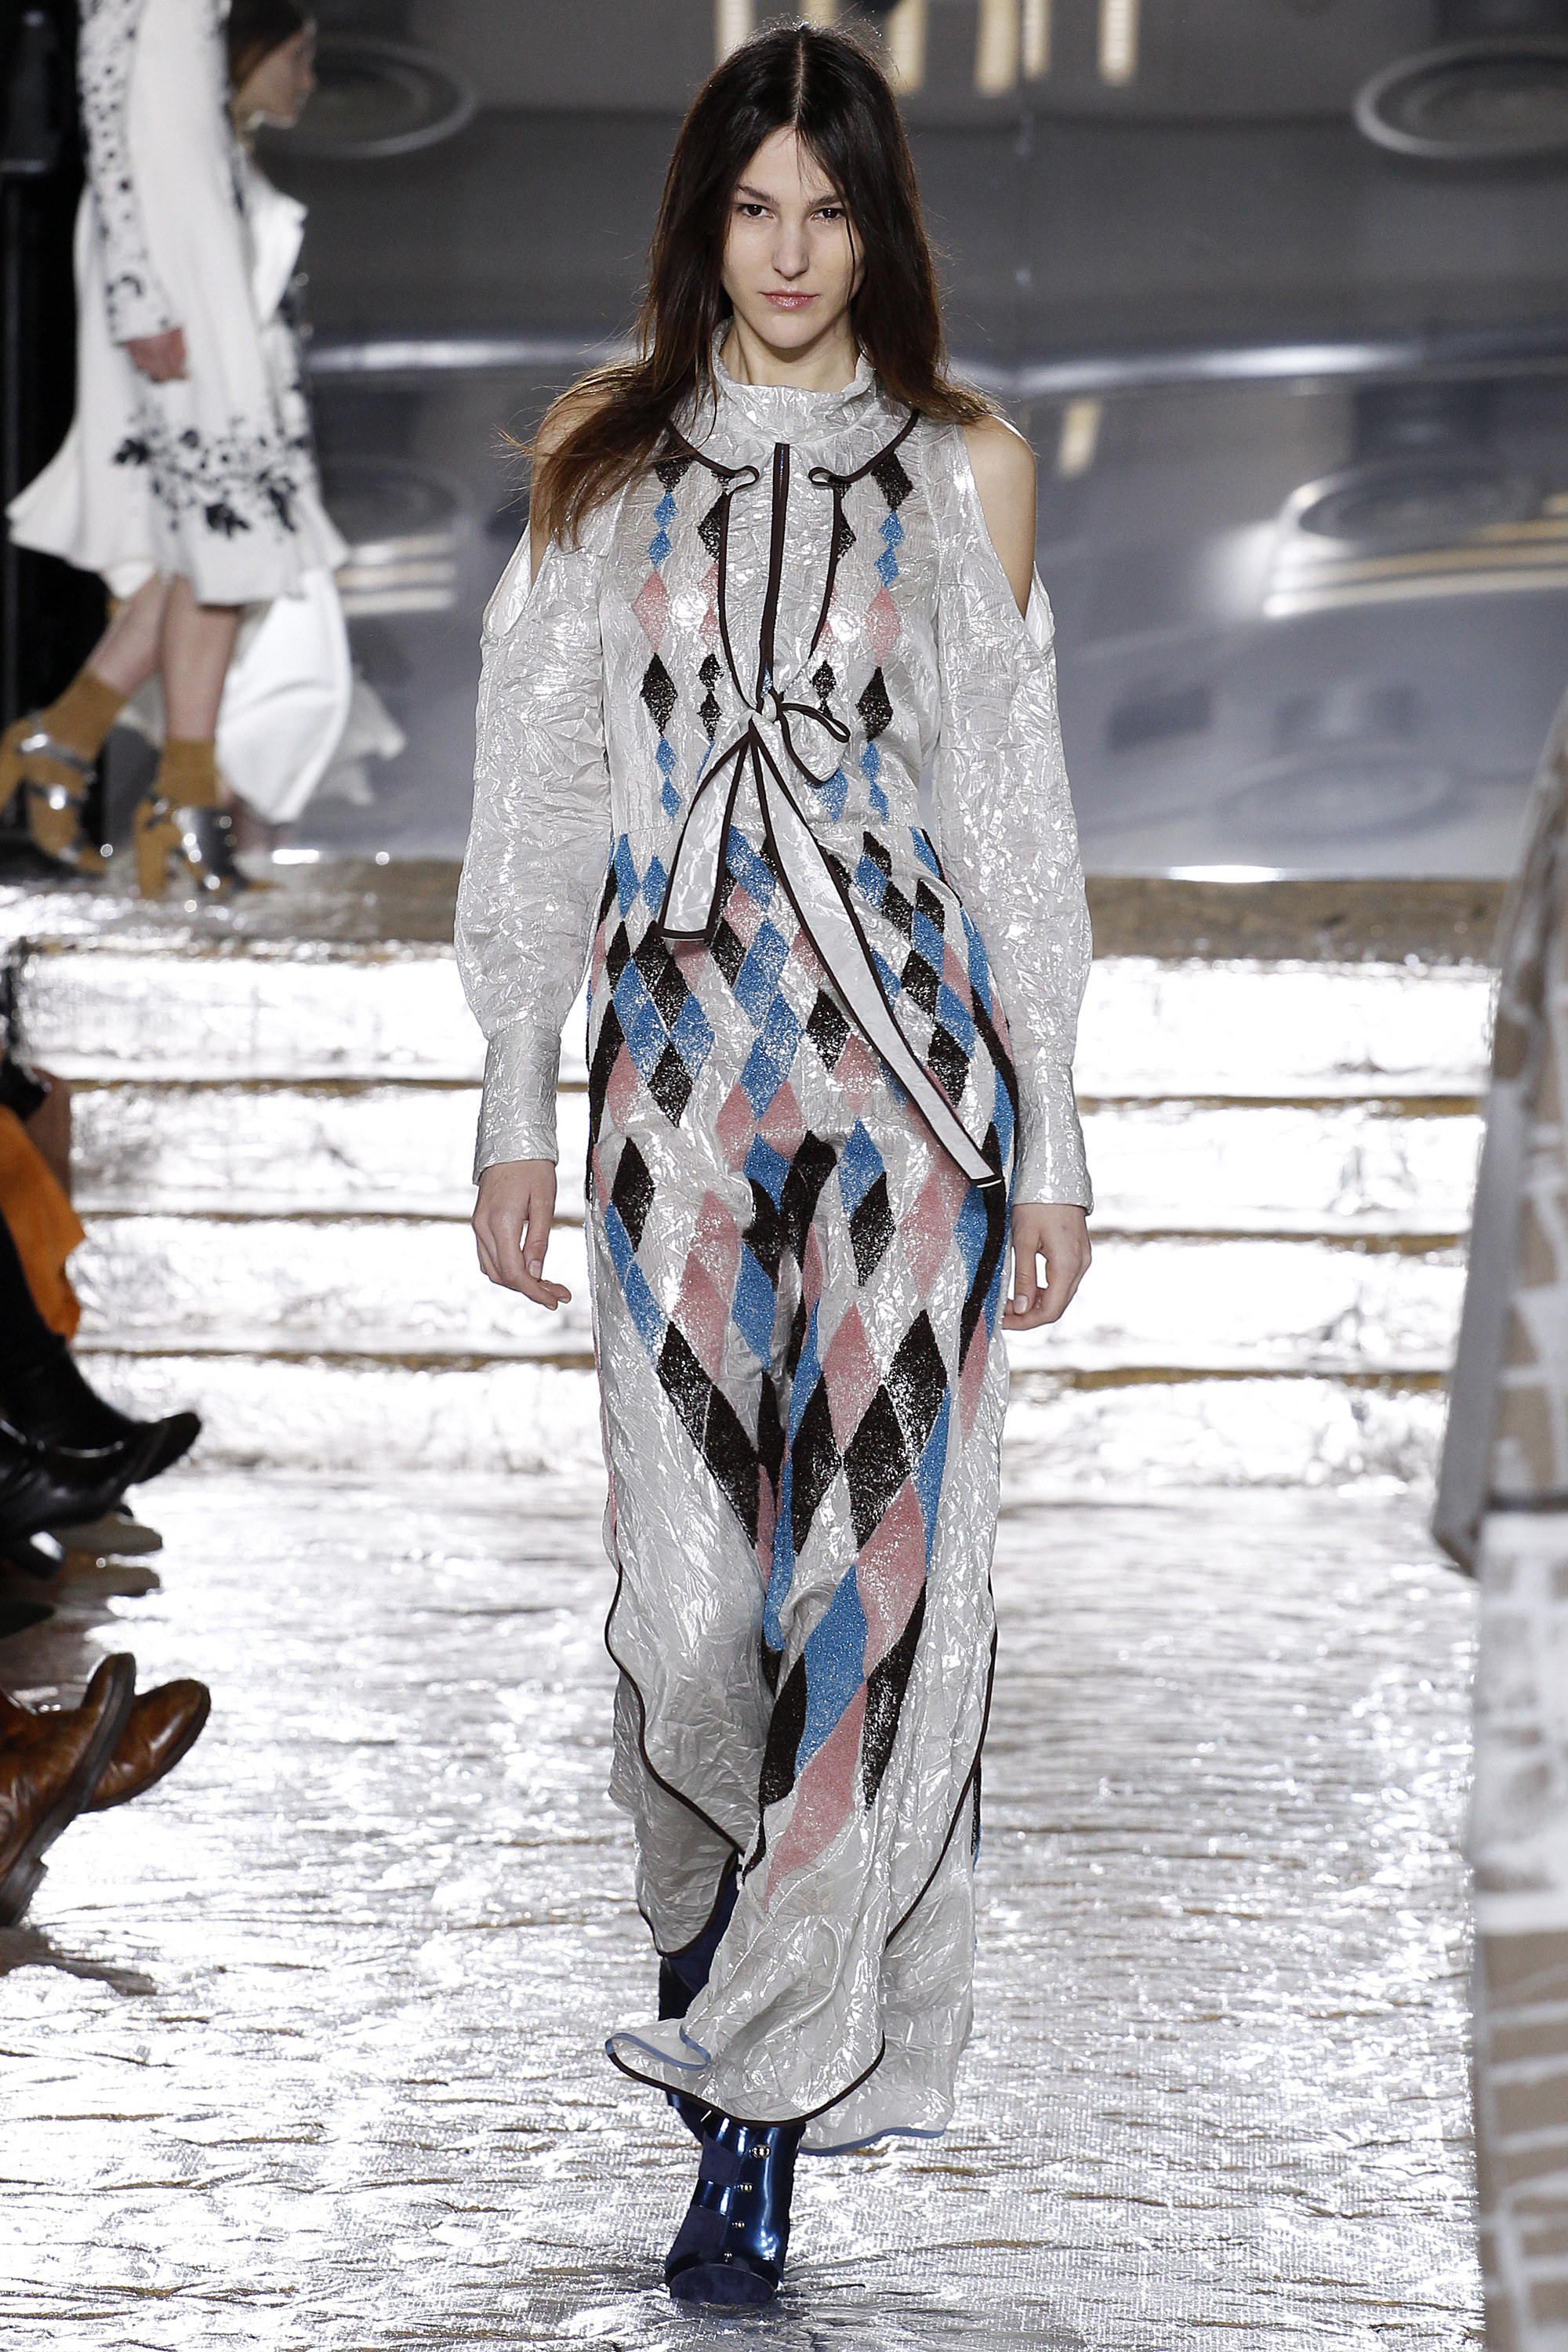 Peter-Pilotto-Autumn-Winter-Fall-2016-London-Fashion-Week-20.jpg